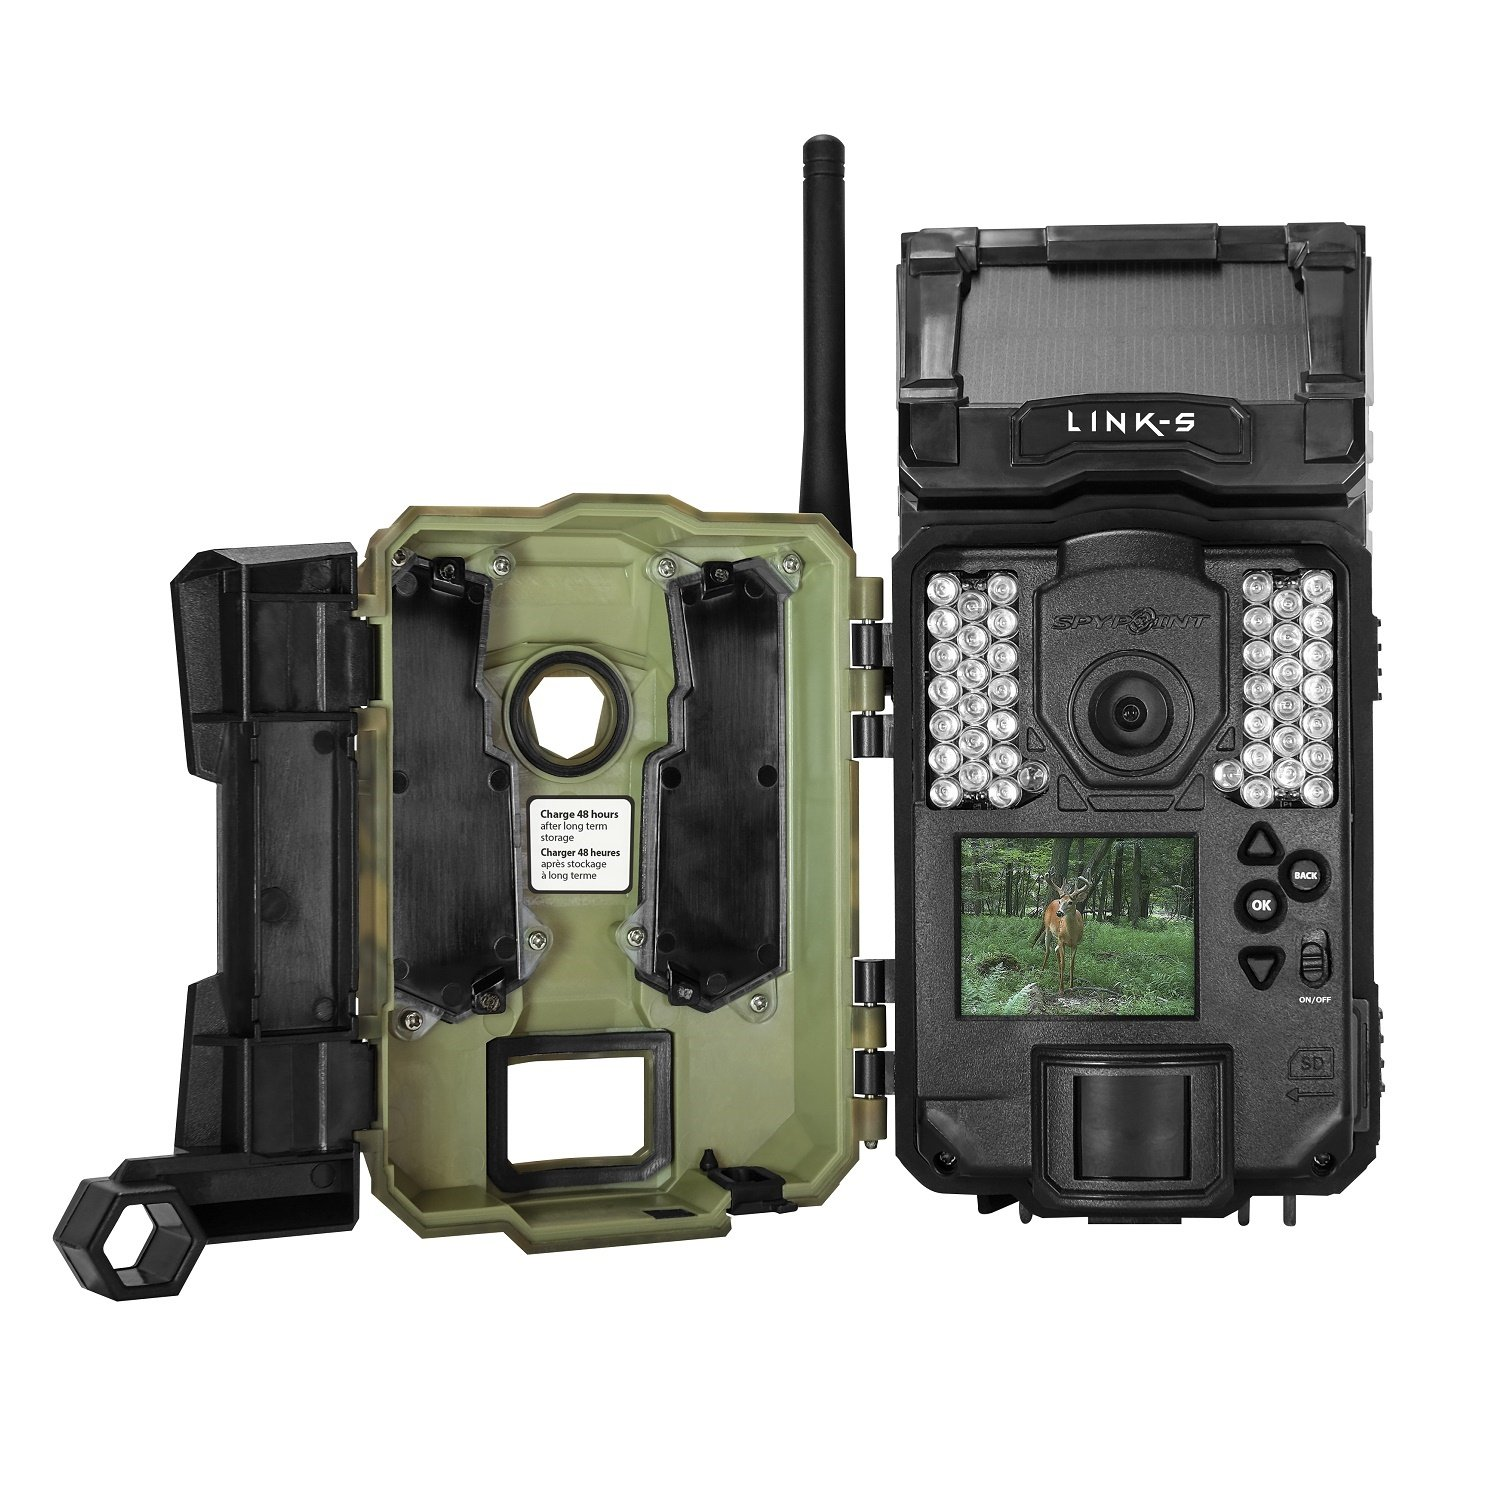 Spypoint LINK-S Verizon Solar Cellular Trail Camera, Camo by Spypoint